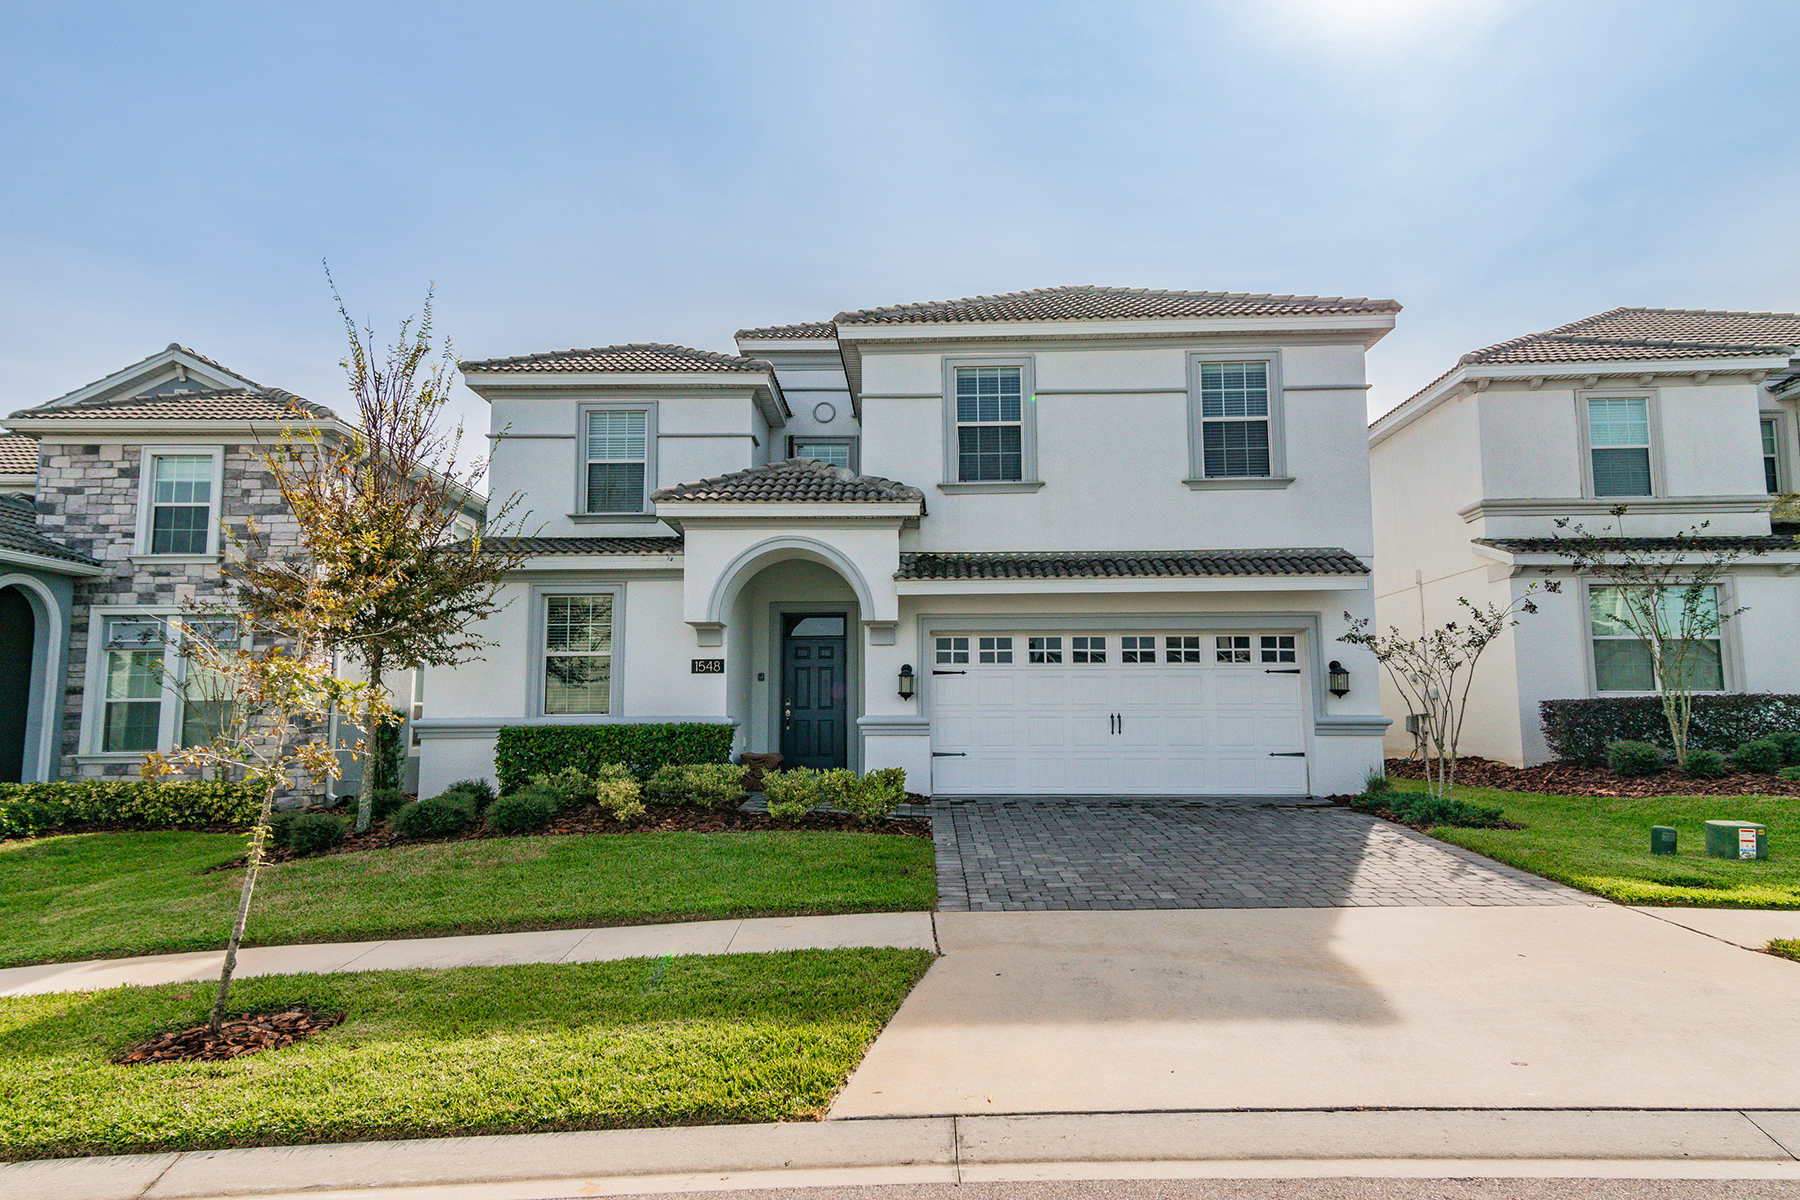 Single Family Homes for Sale at DAVENPORT 1548 Moon Valley Dr Davenport, Florida 33896 United States